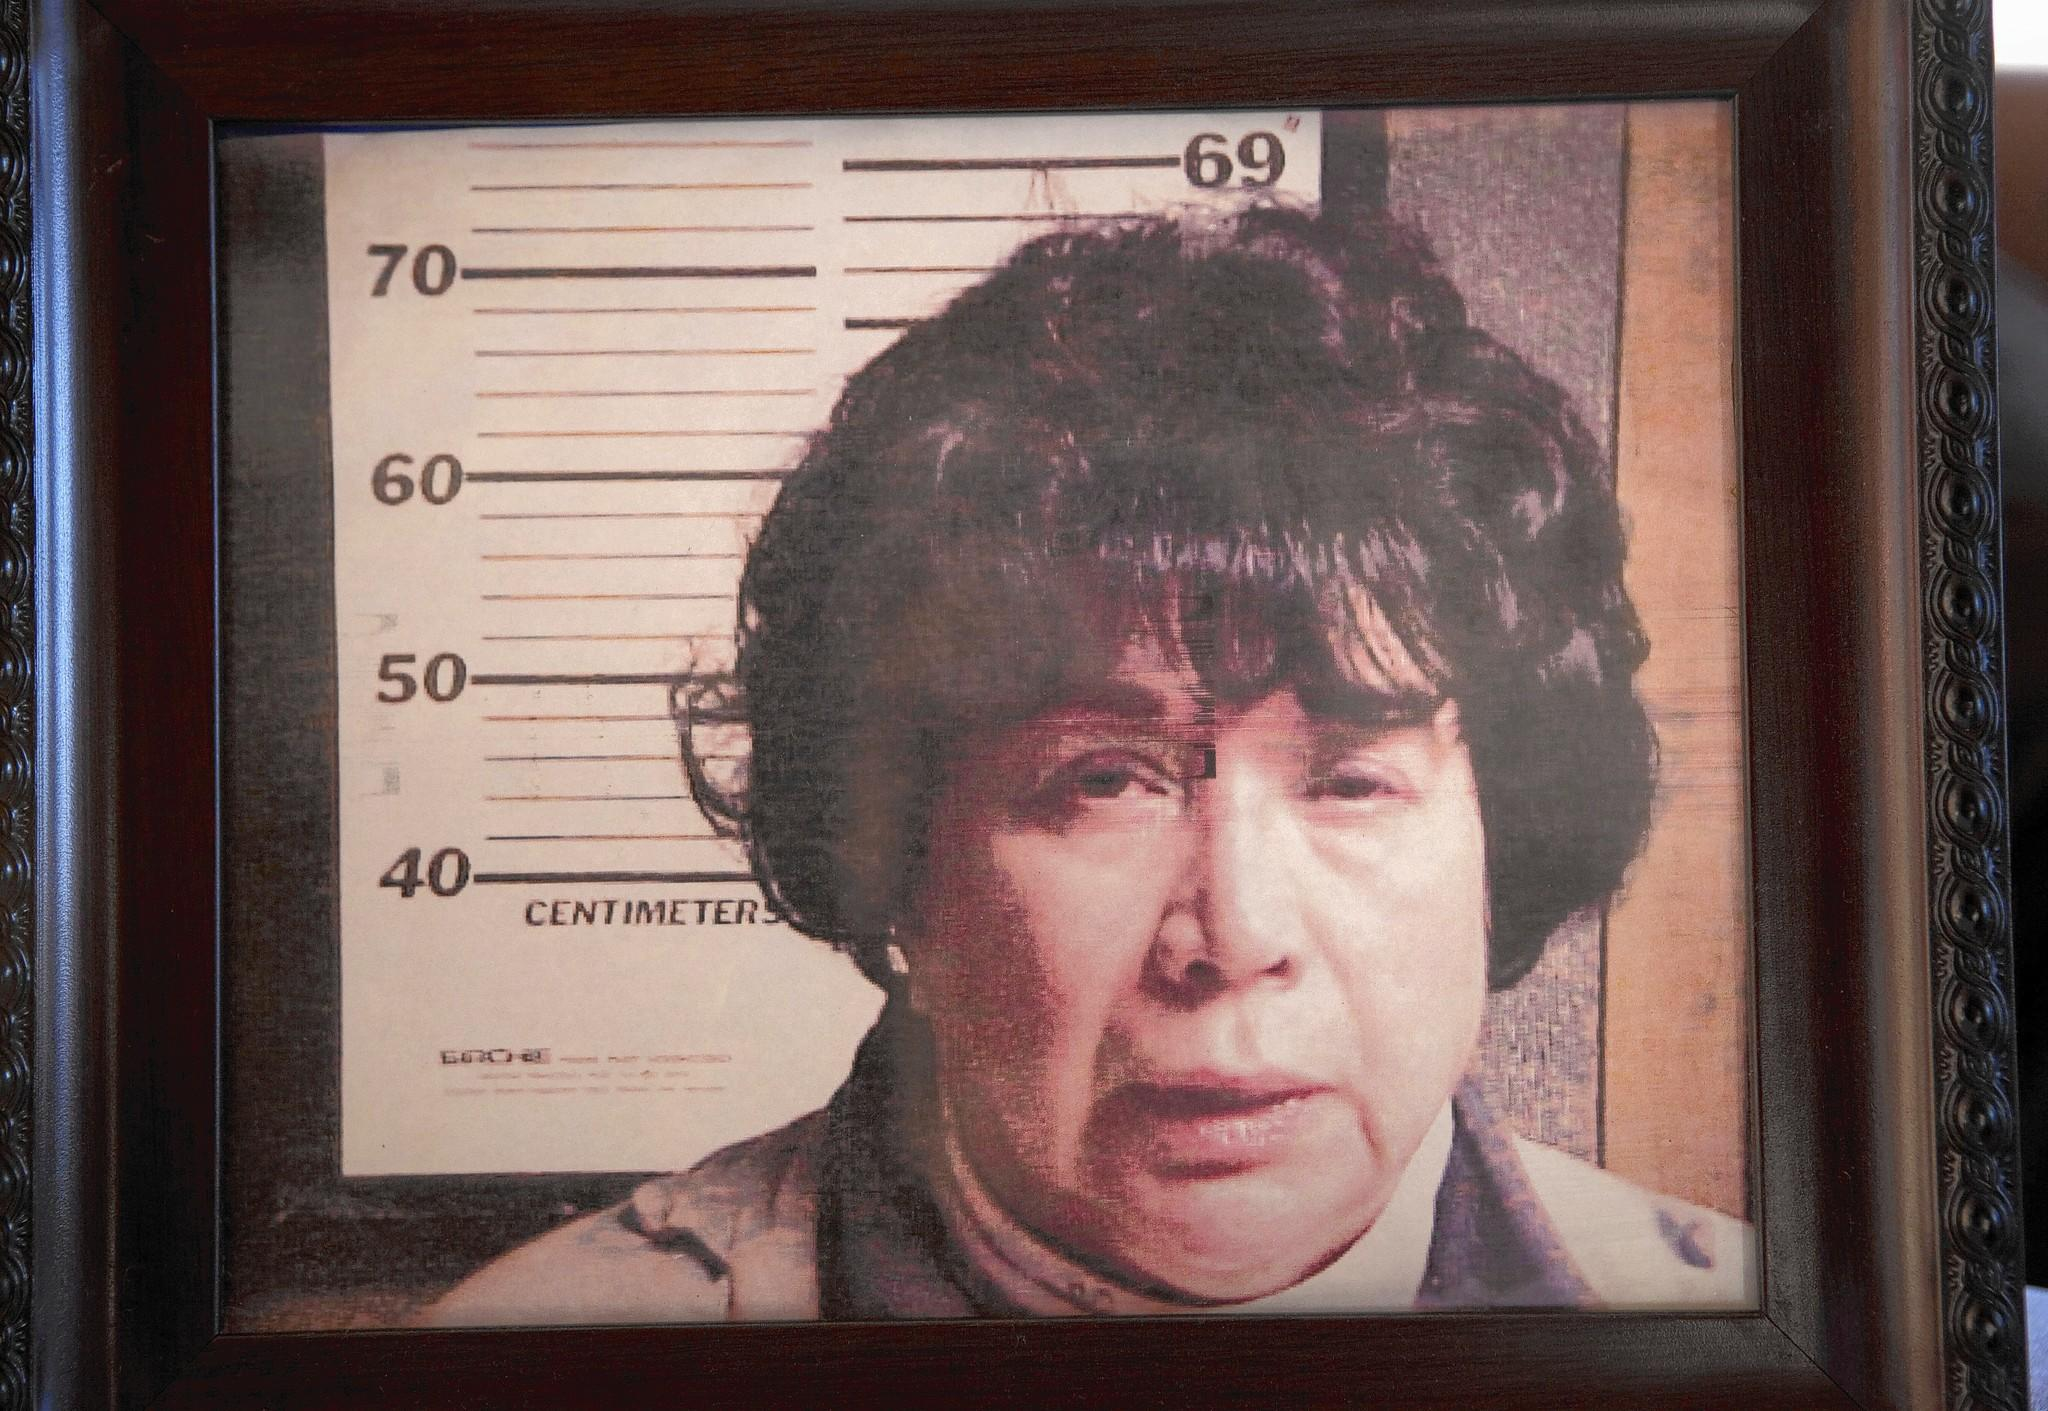 Homeowner John Hosta confronted tenant Marion Berntsen with her Fontana, Wis., police mug shot that he hung in his house where she could see it.